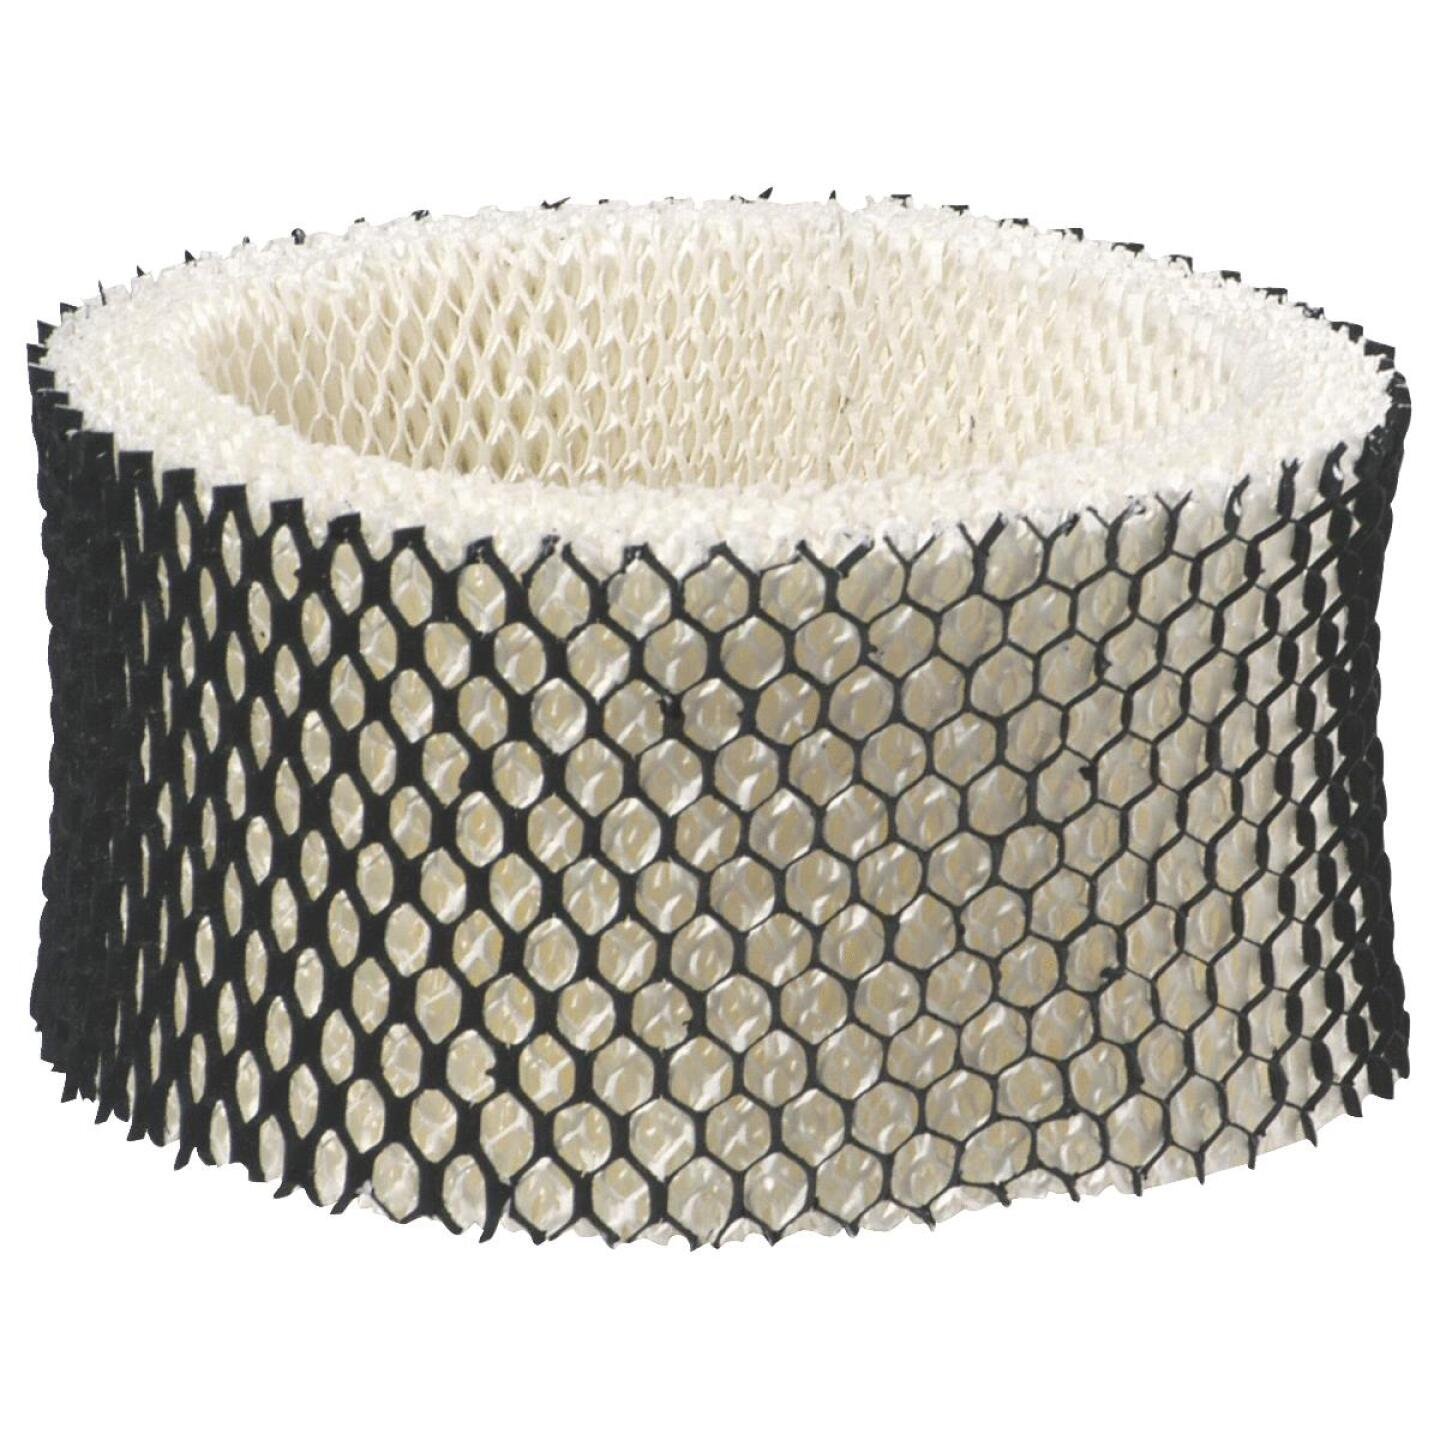 Holmes HWF62 Type B Humidifier Wick Filter Image 1